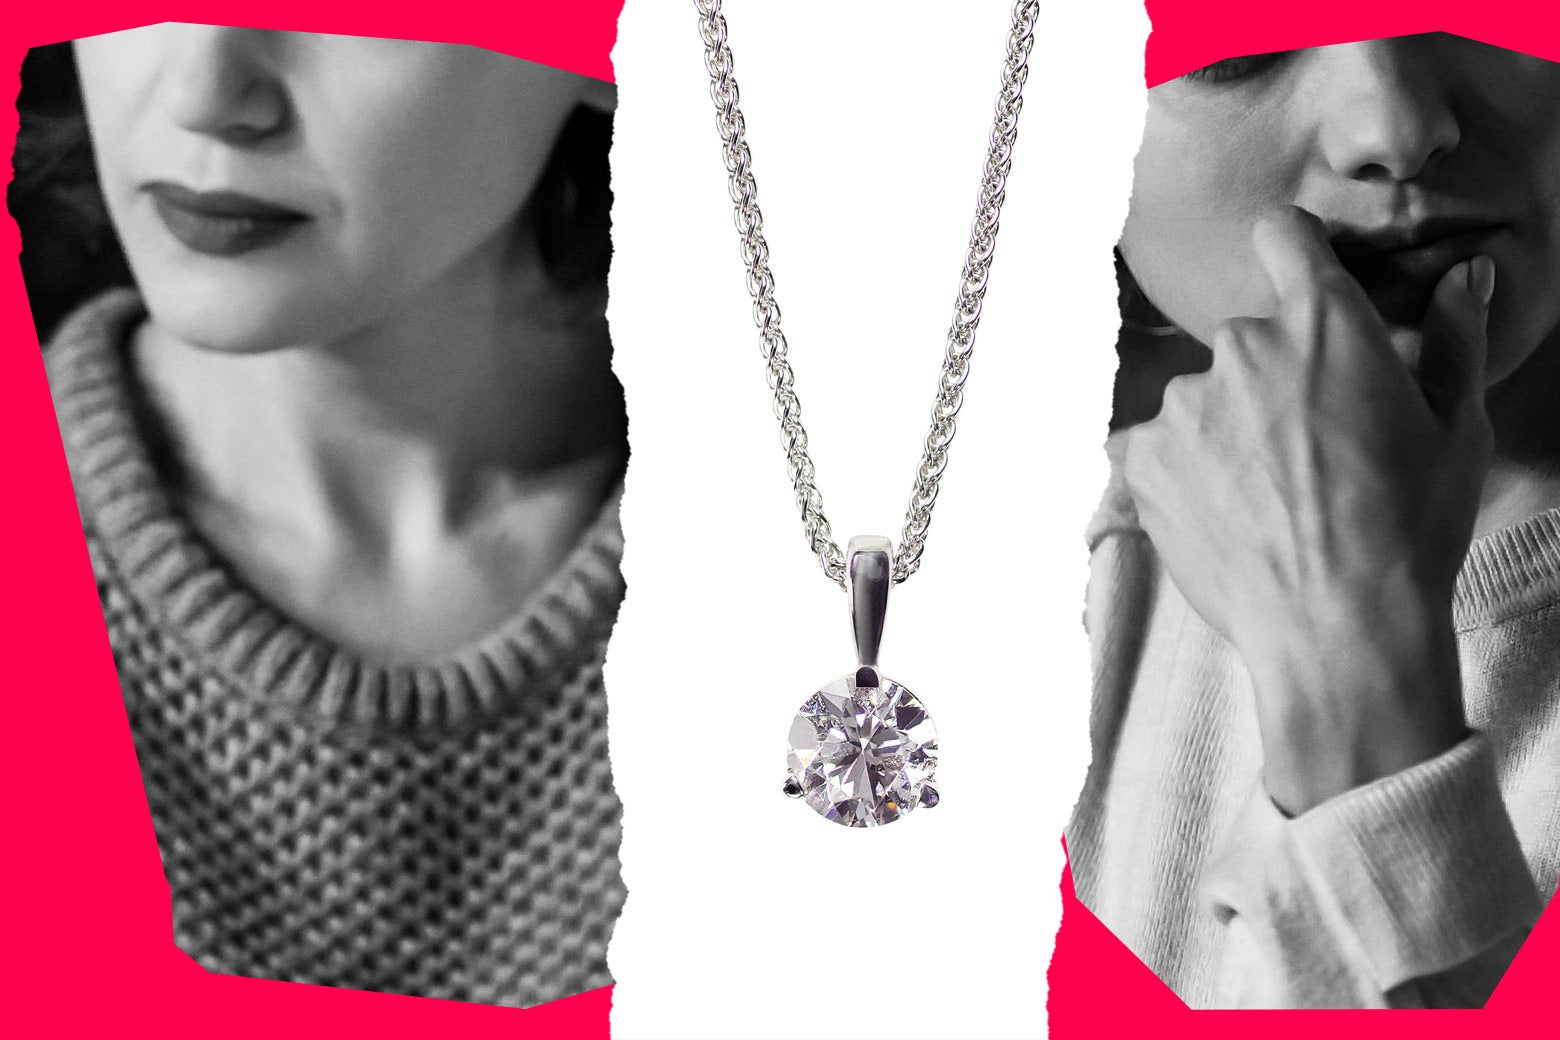 A collage depicting two women looking anxious, with a necklace at center.